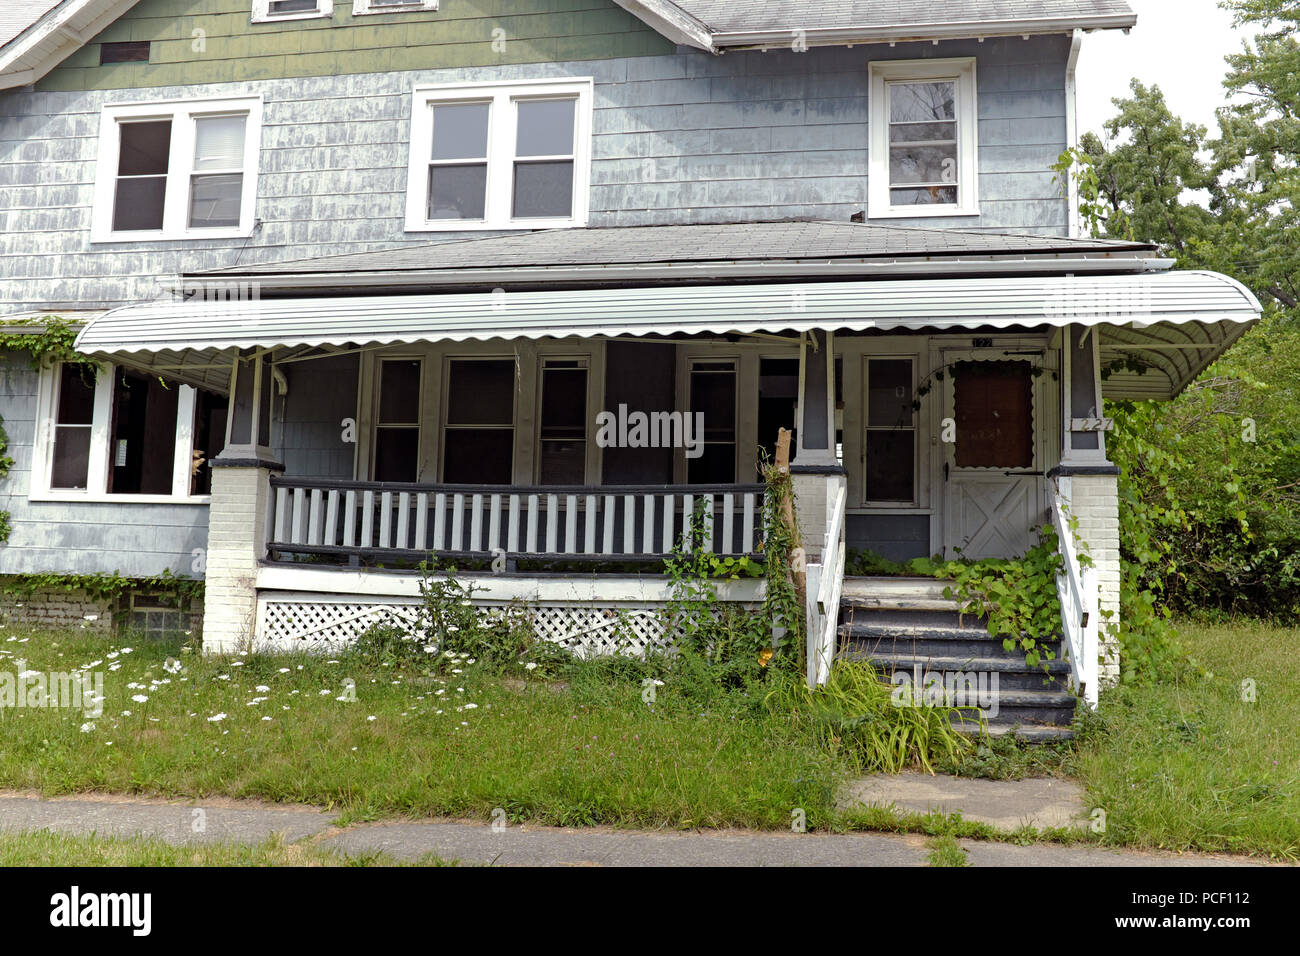 Vacant run-down house in the residential neighborhood of East Cleveland in Cleveland, Ohio, USA. - Stock Image